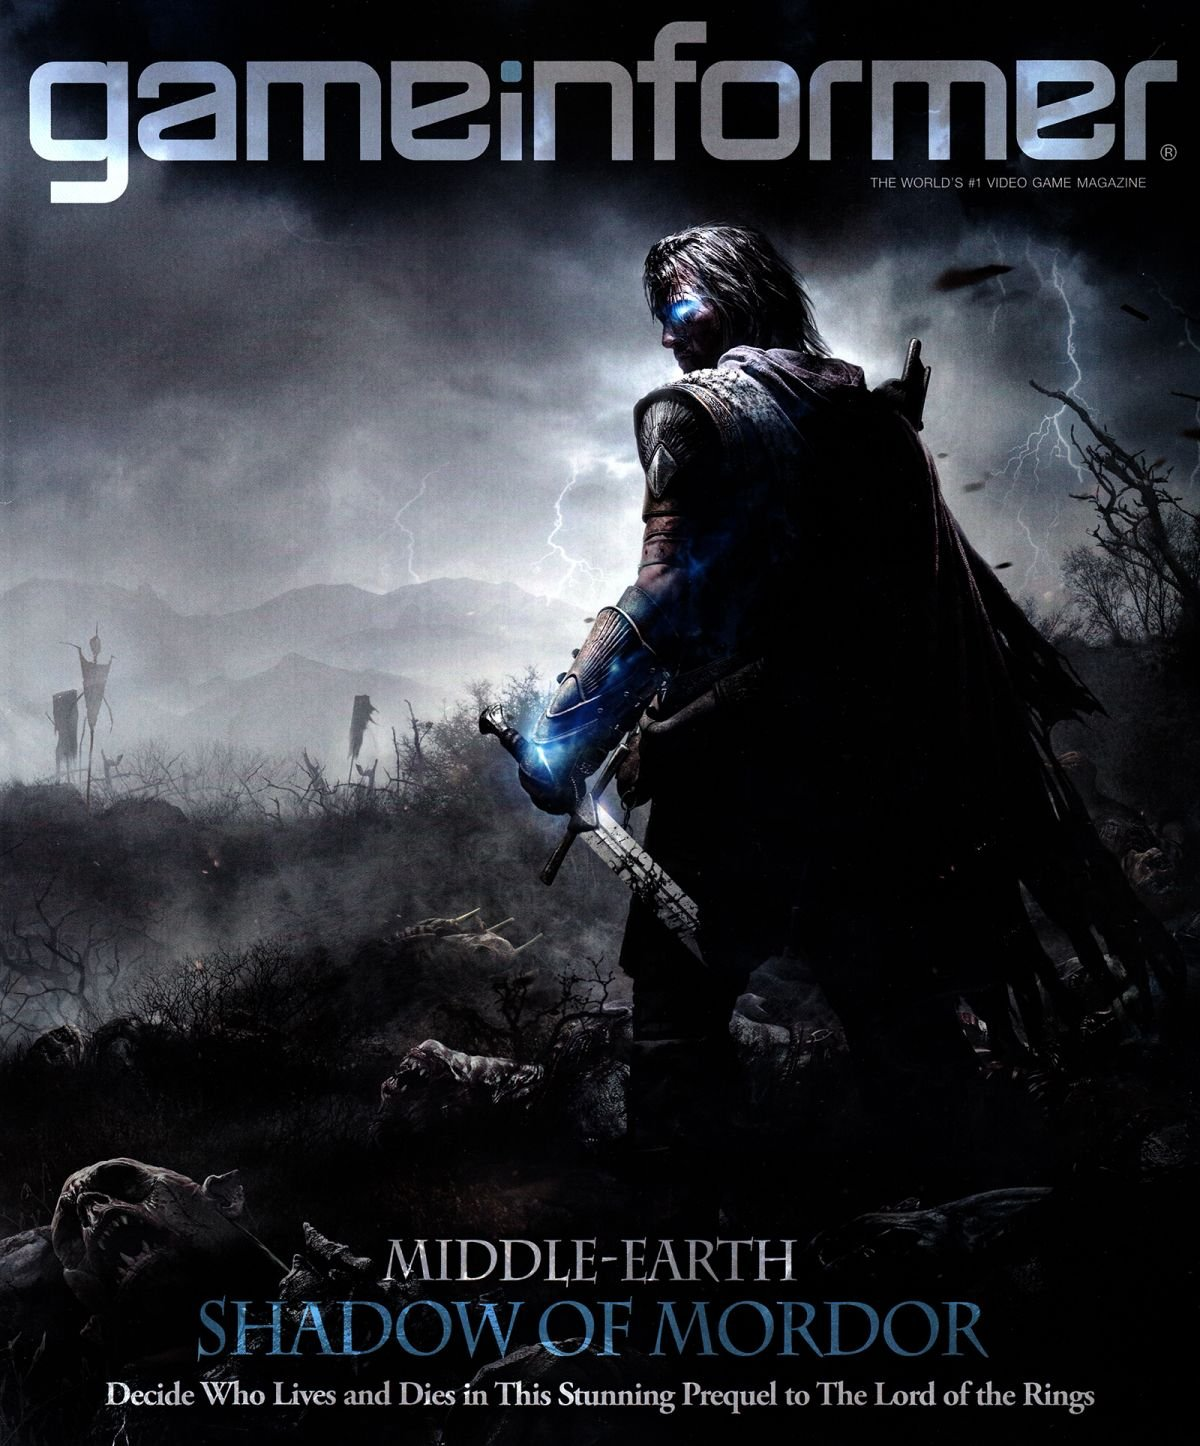 Game Informer Issue 248 December 2013